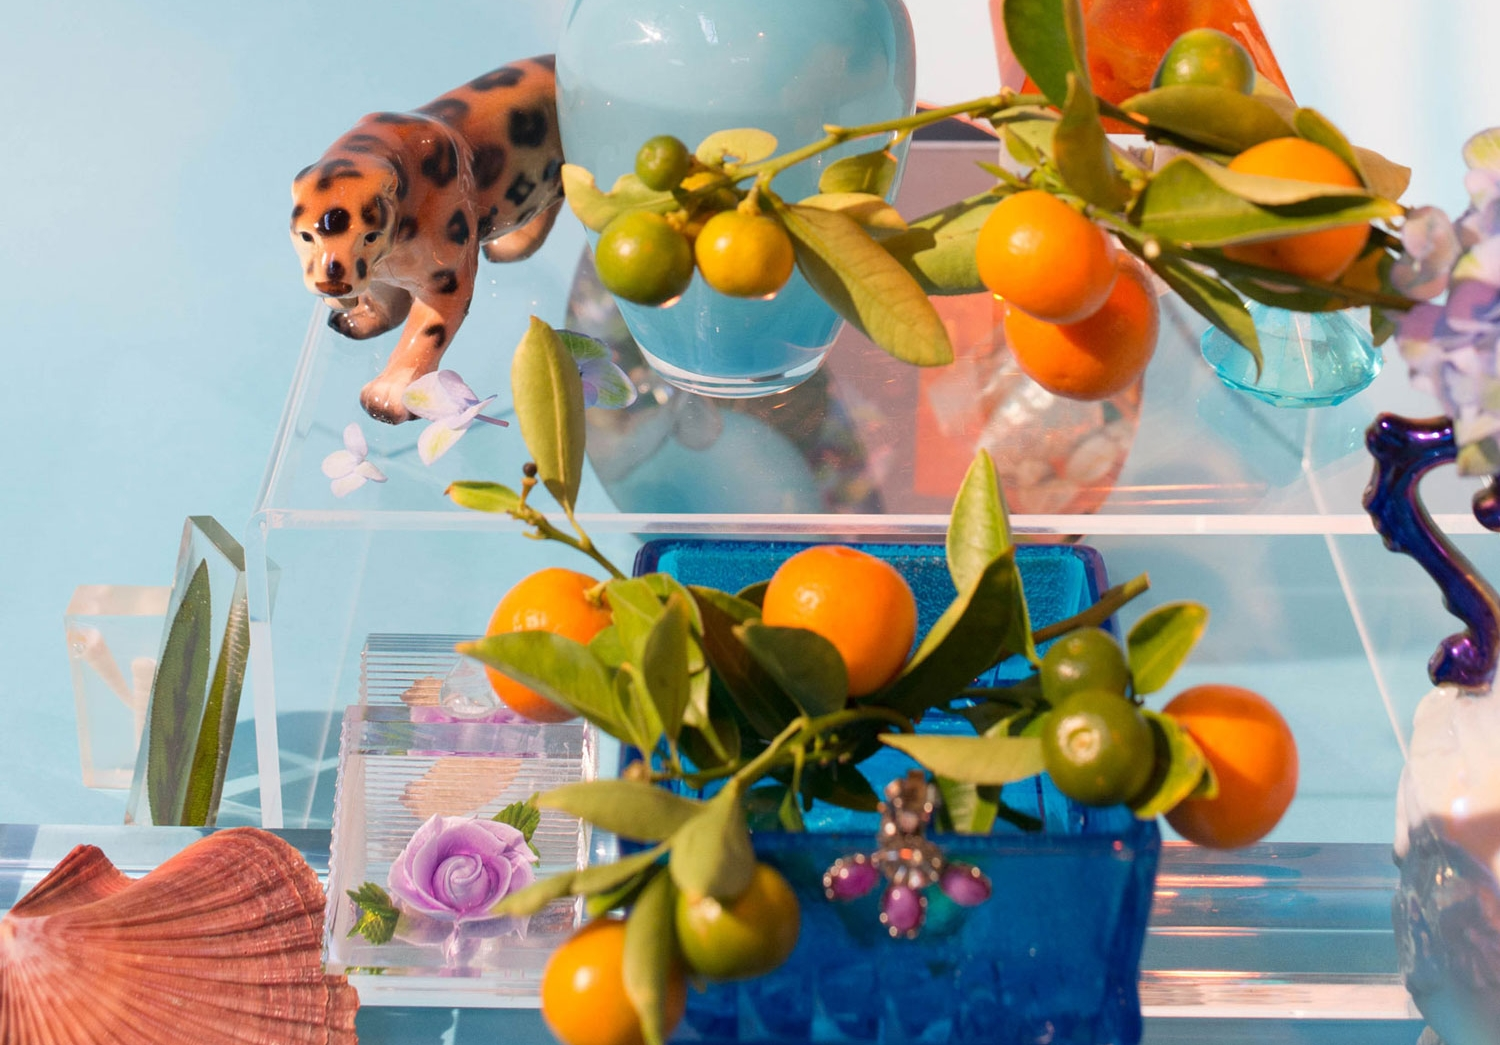 WISH YOU WERE HERE - Using tropical flora, hand-crafted resin pieces, and her personal collection of mid-century Florida memorabilia, designer Rika Mady arranges a series of still lifes inspired by three very different cities in the sunshine state.